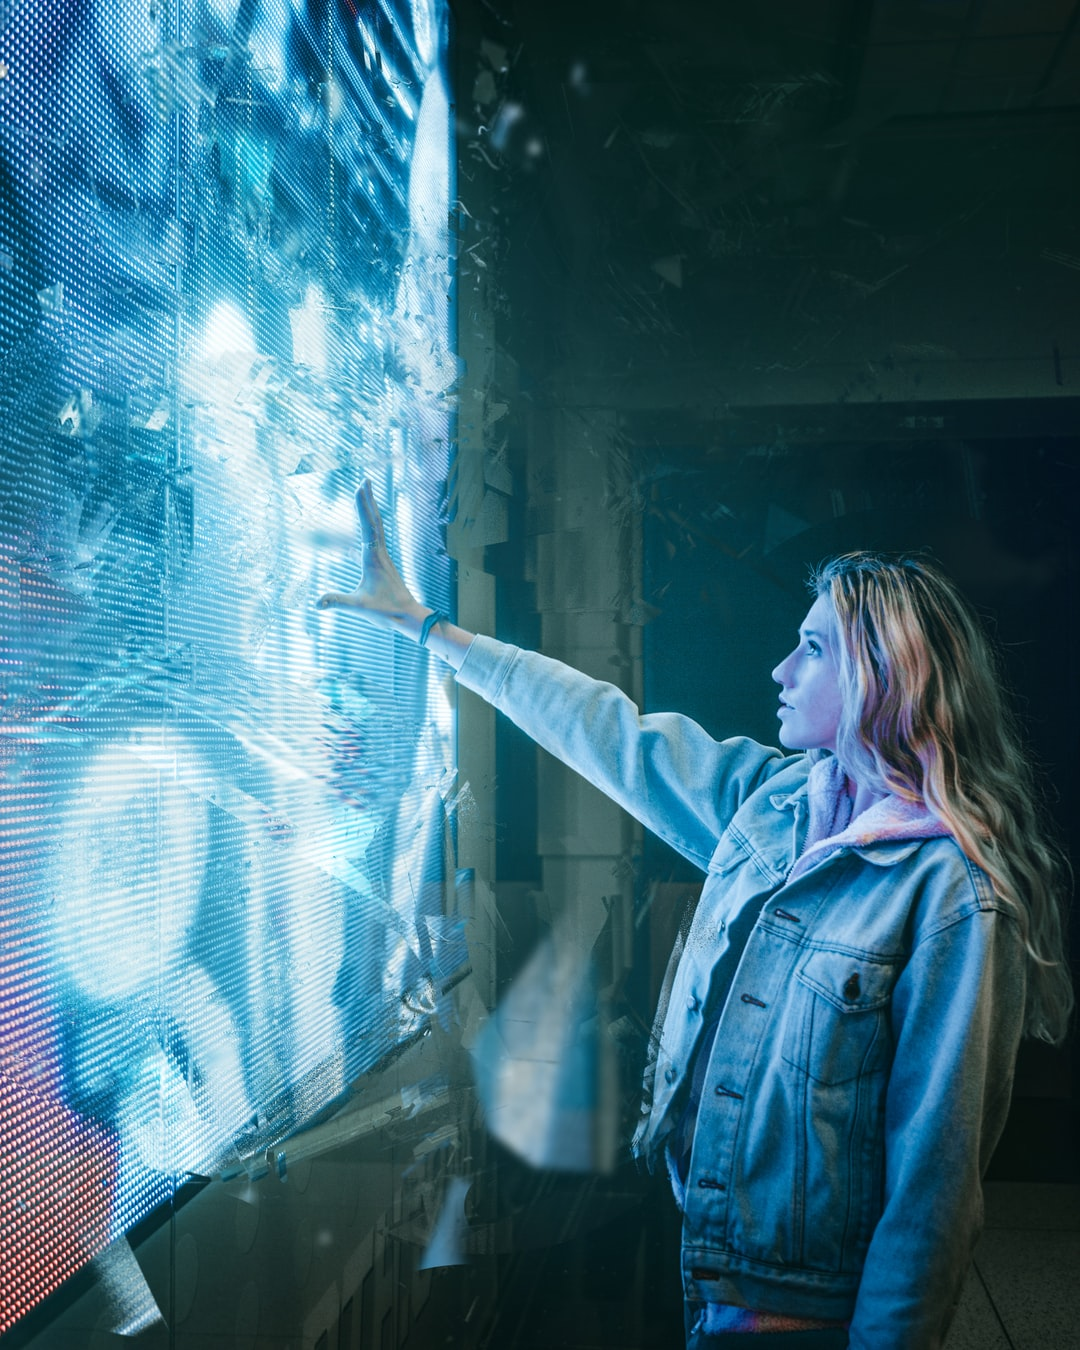 An image of a woman standing before a wall-sized blue display, reaching out as if controlling it with her hand.